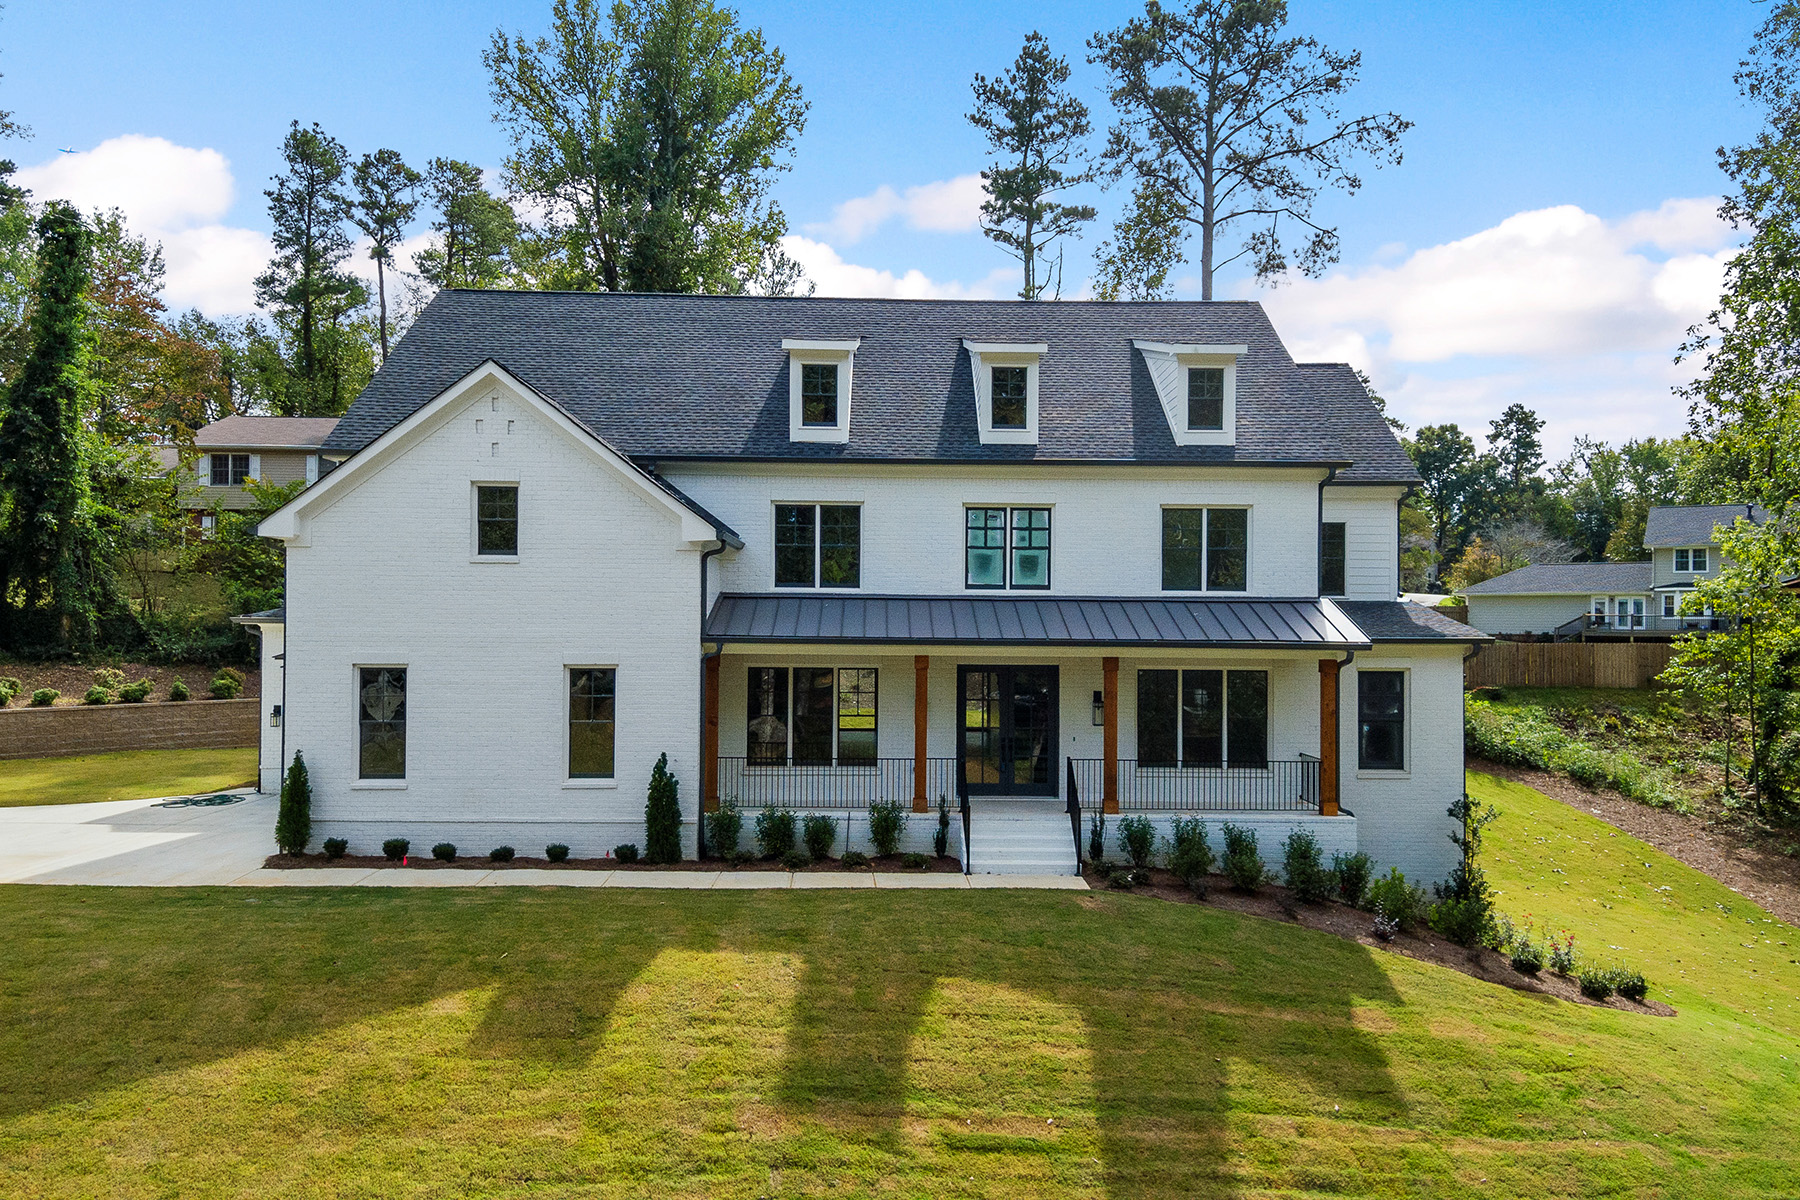 Single Family Homes for Active at New Custom Construction in Sought-After East Cobb Community 4041 Summit Drive Marietta, Georgia 30068 United States